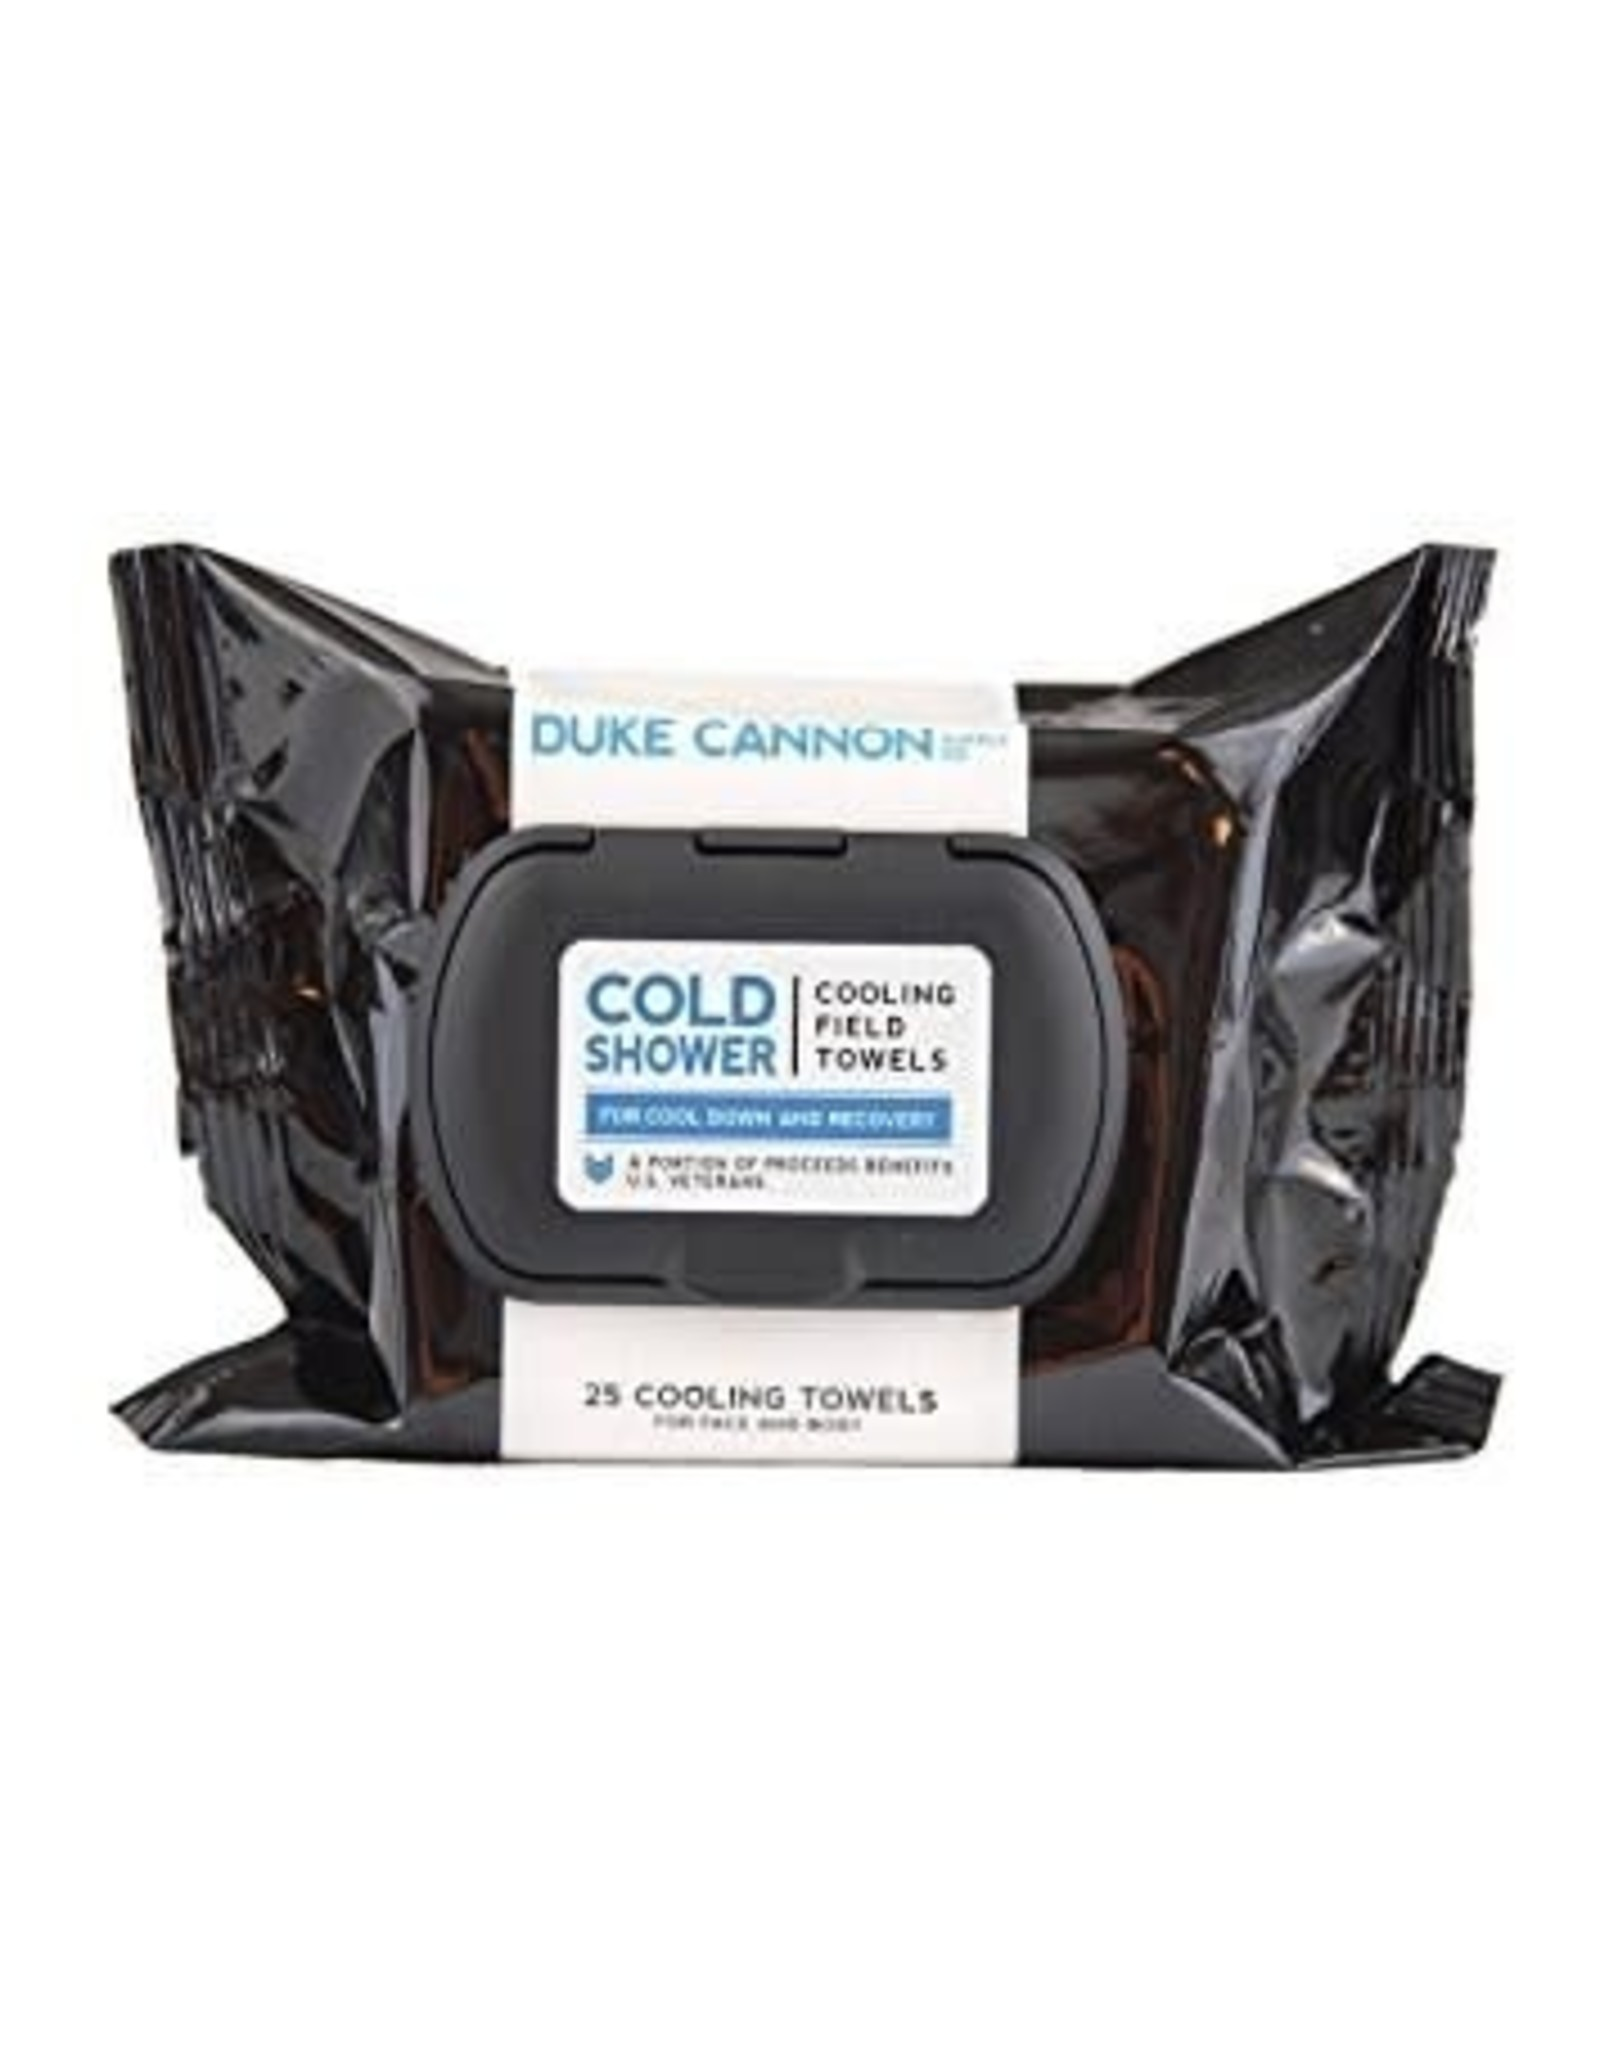 Duke Cannon Supply Co Cold Shower Cooling FIeld Towel